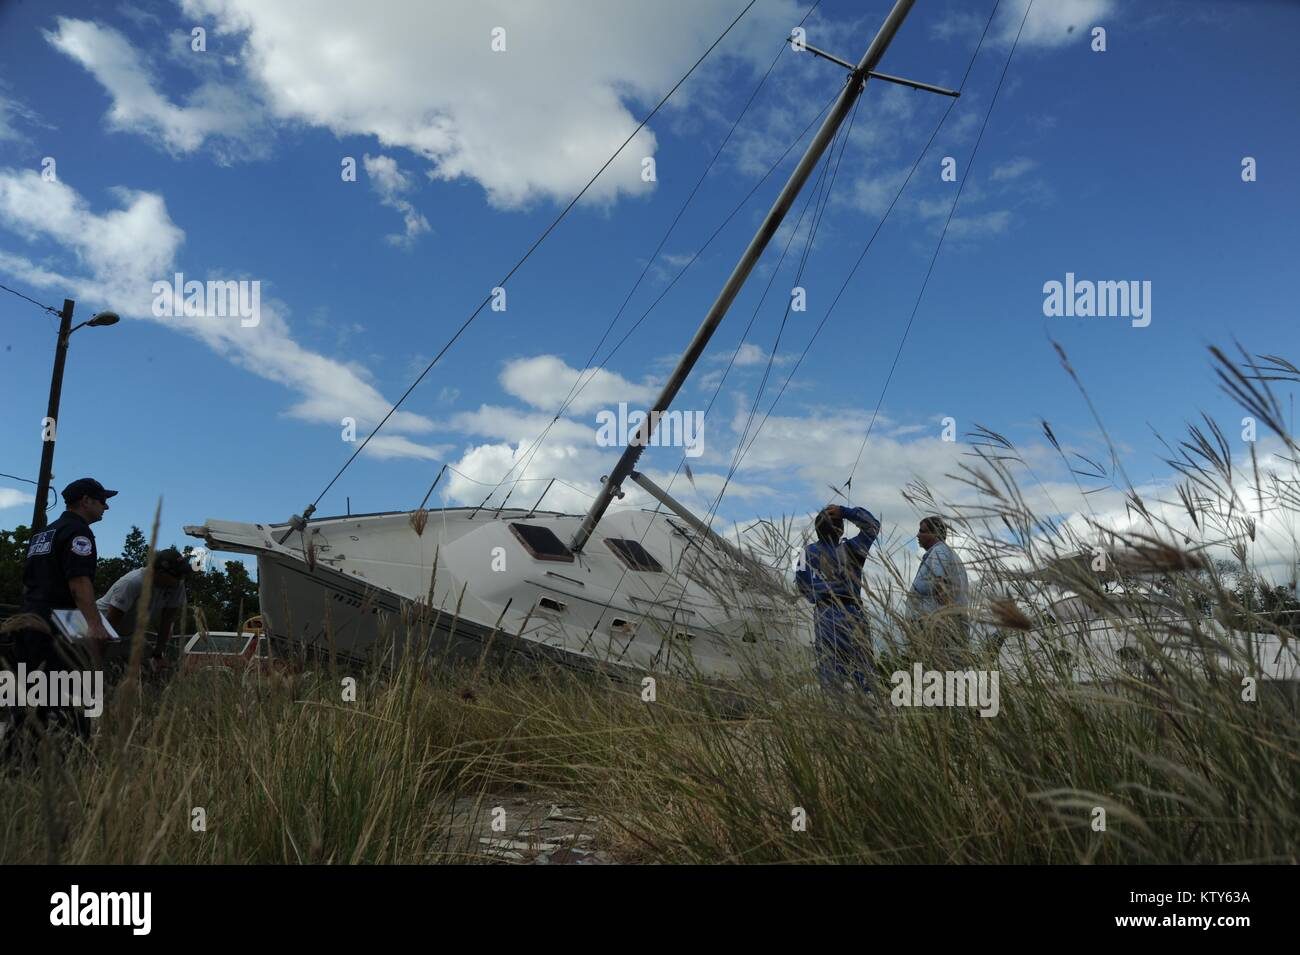 U.S. Coast Guard officers remove a wrecked sailboat in the aftermath of Hurricane Maria December 19, 2017 in Salinas, - Stock Image